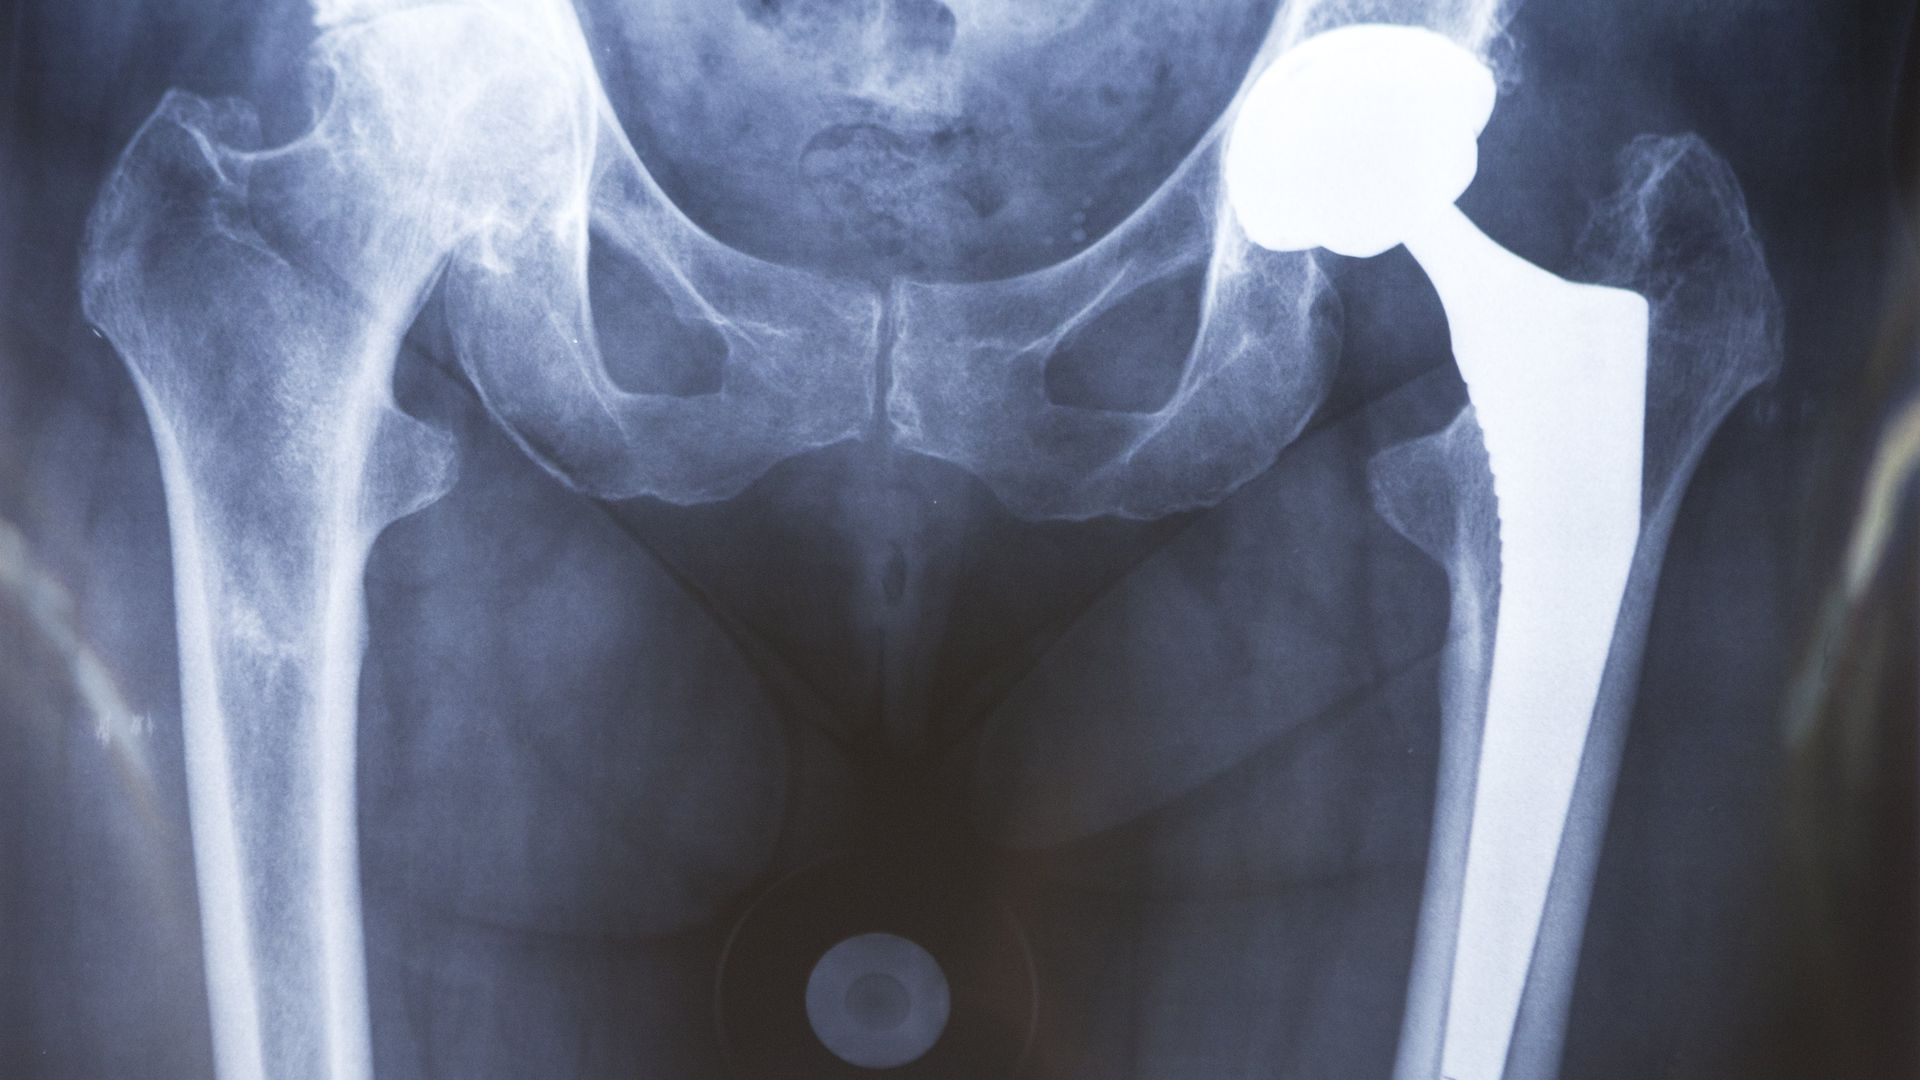 Hip Prosthesis, Surgery X-rays (Photo by: BSIP/Universal Images Group via Getty Images)